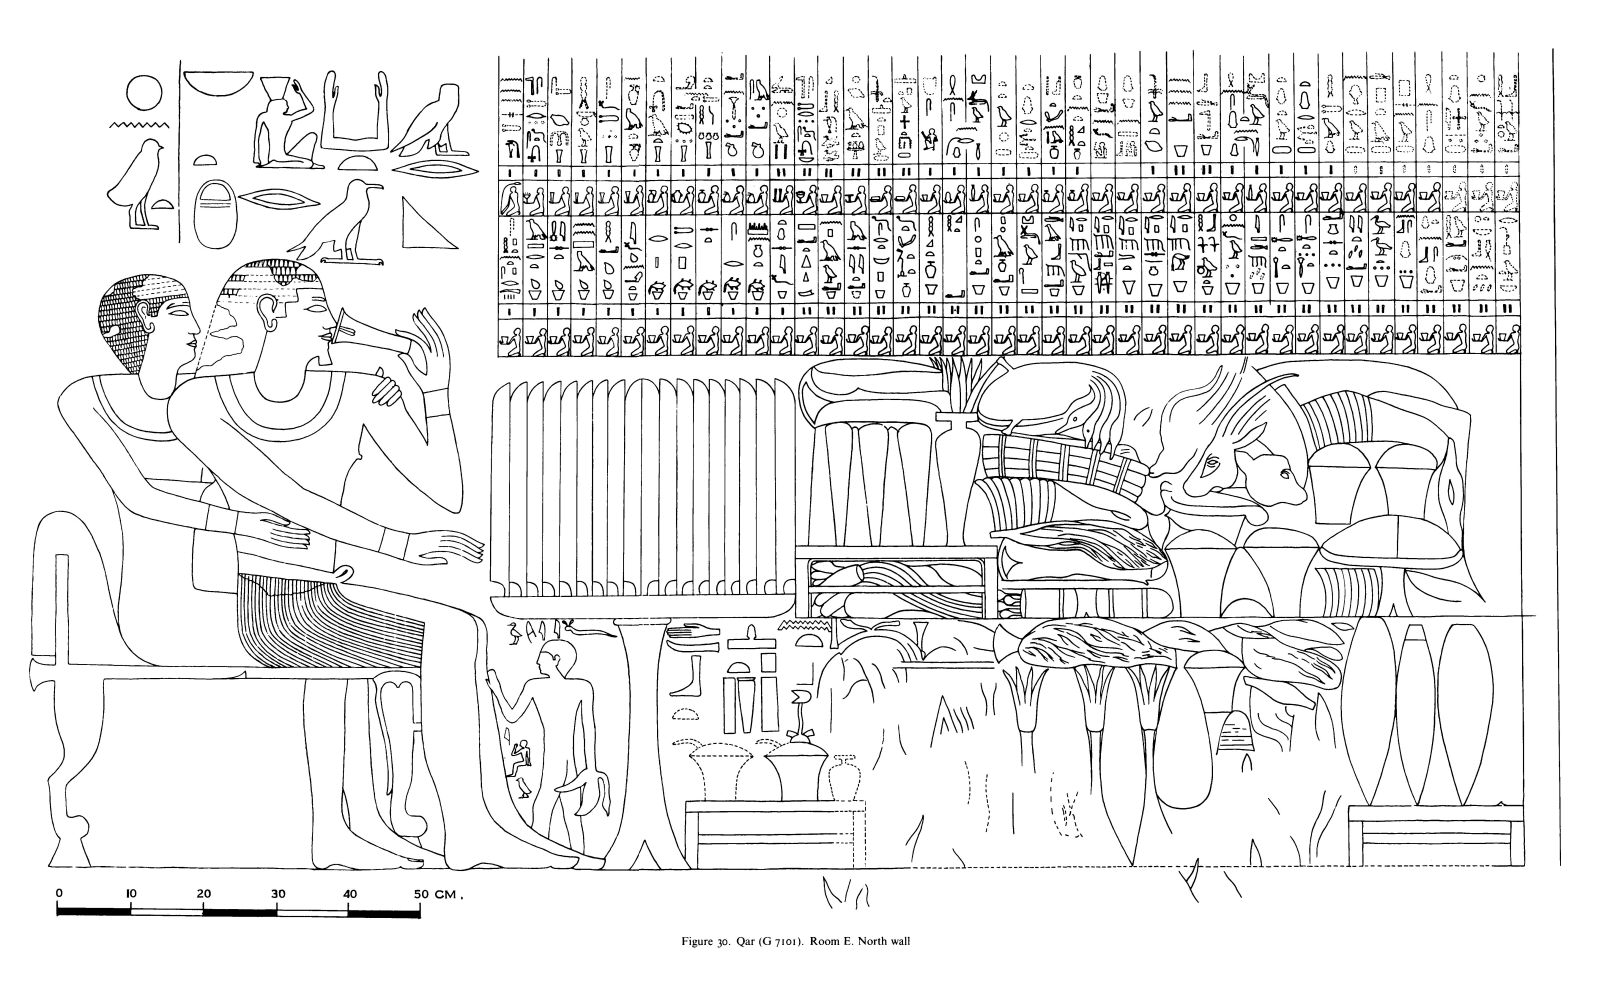 Drawings: G 7101: relief from Room E, N wall